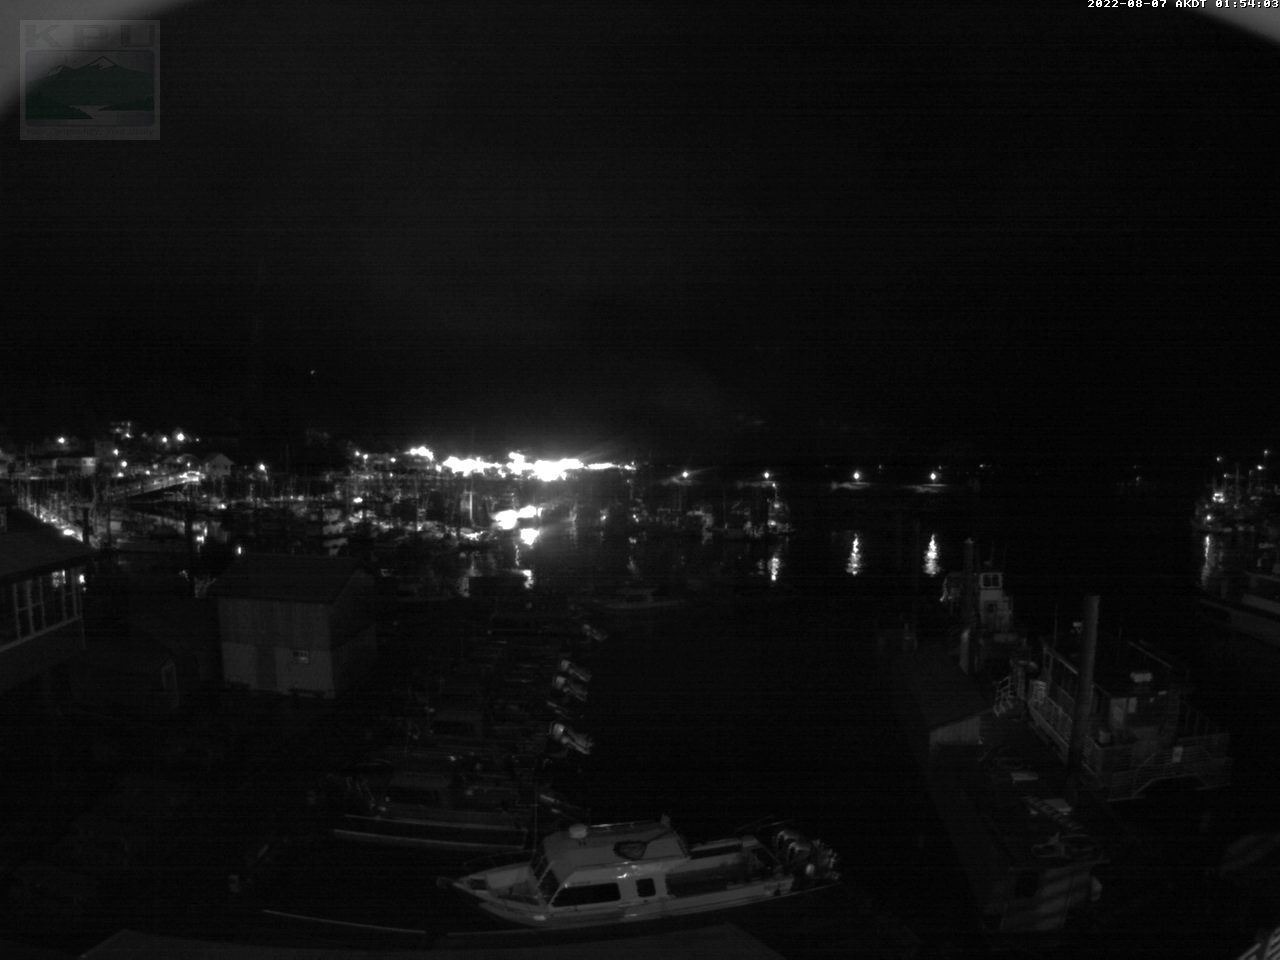 Salmon Landing WebCam